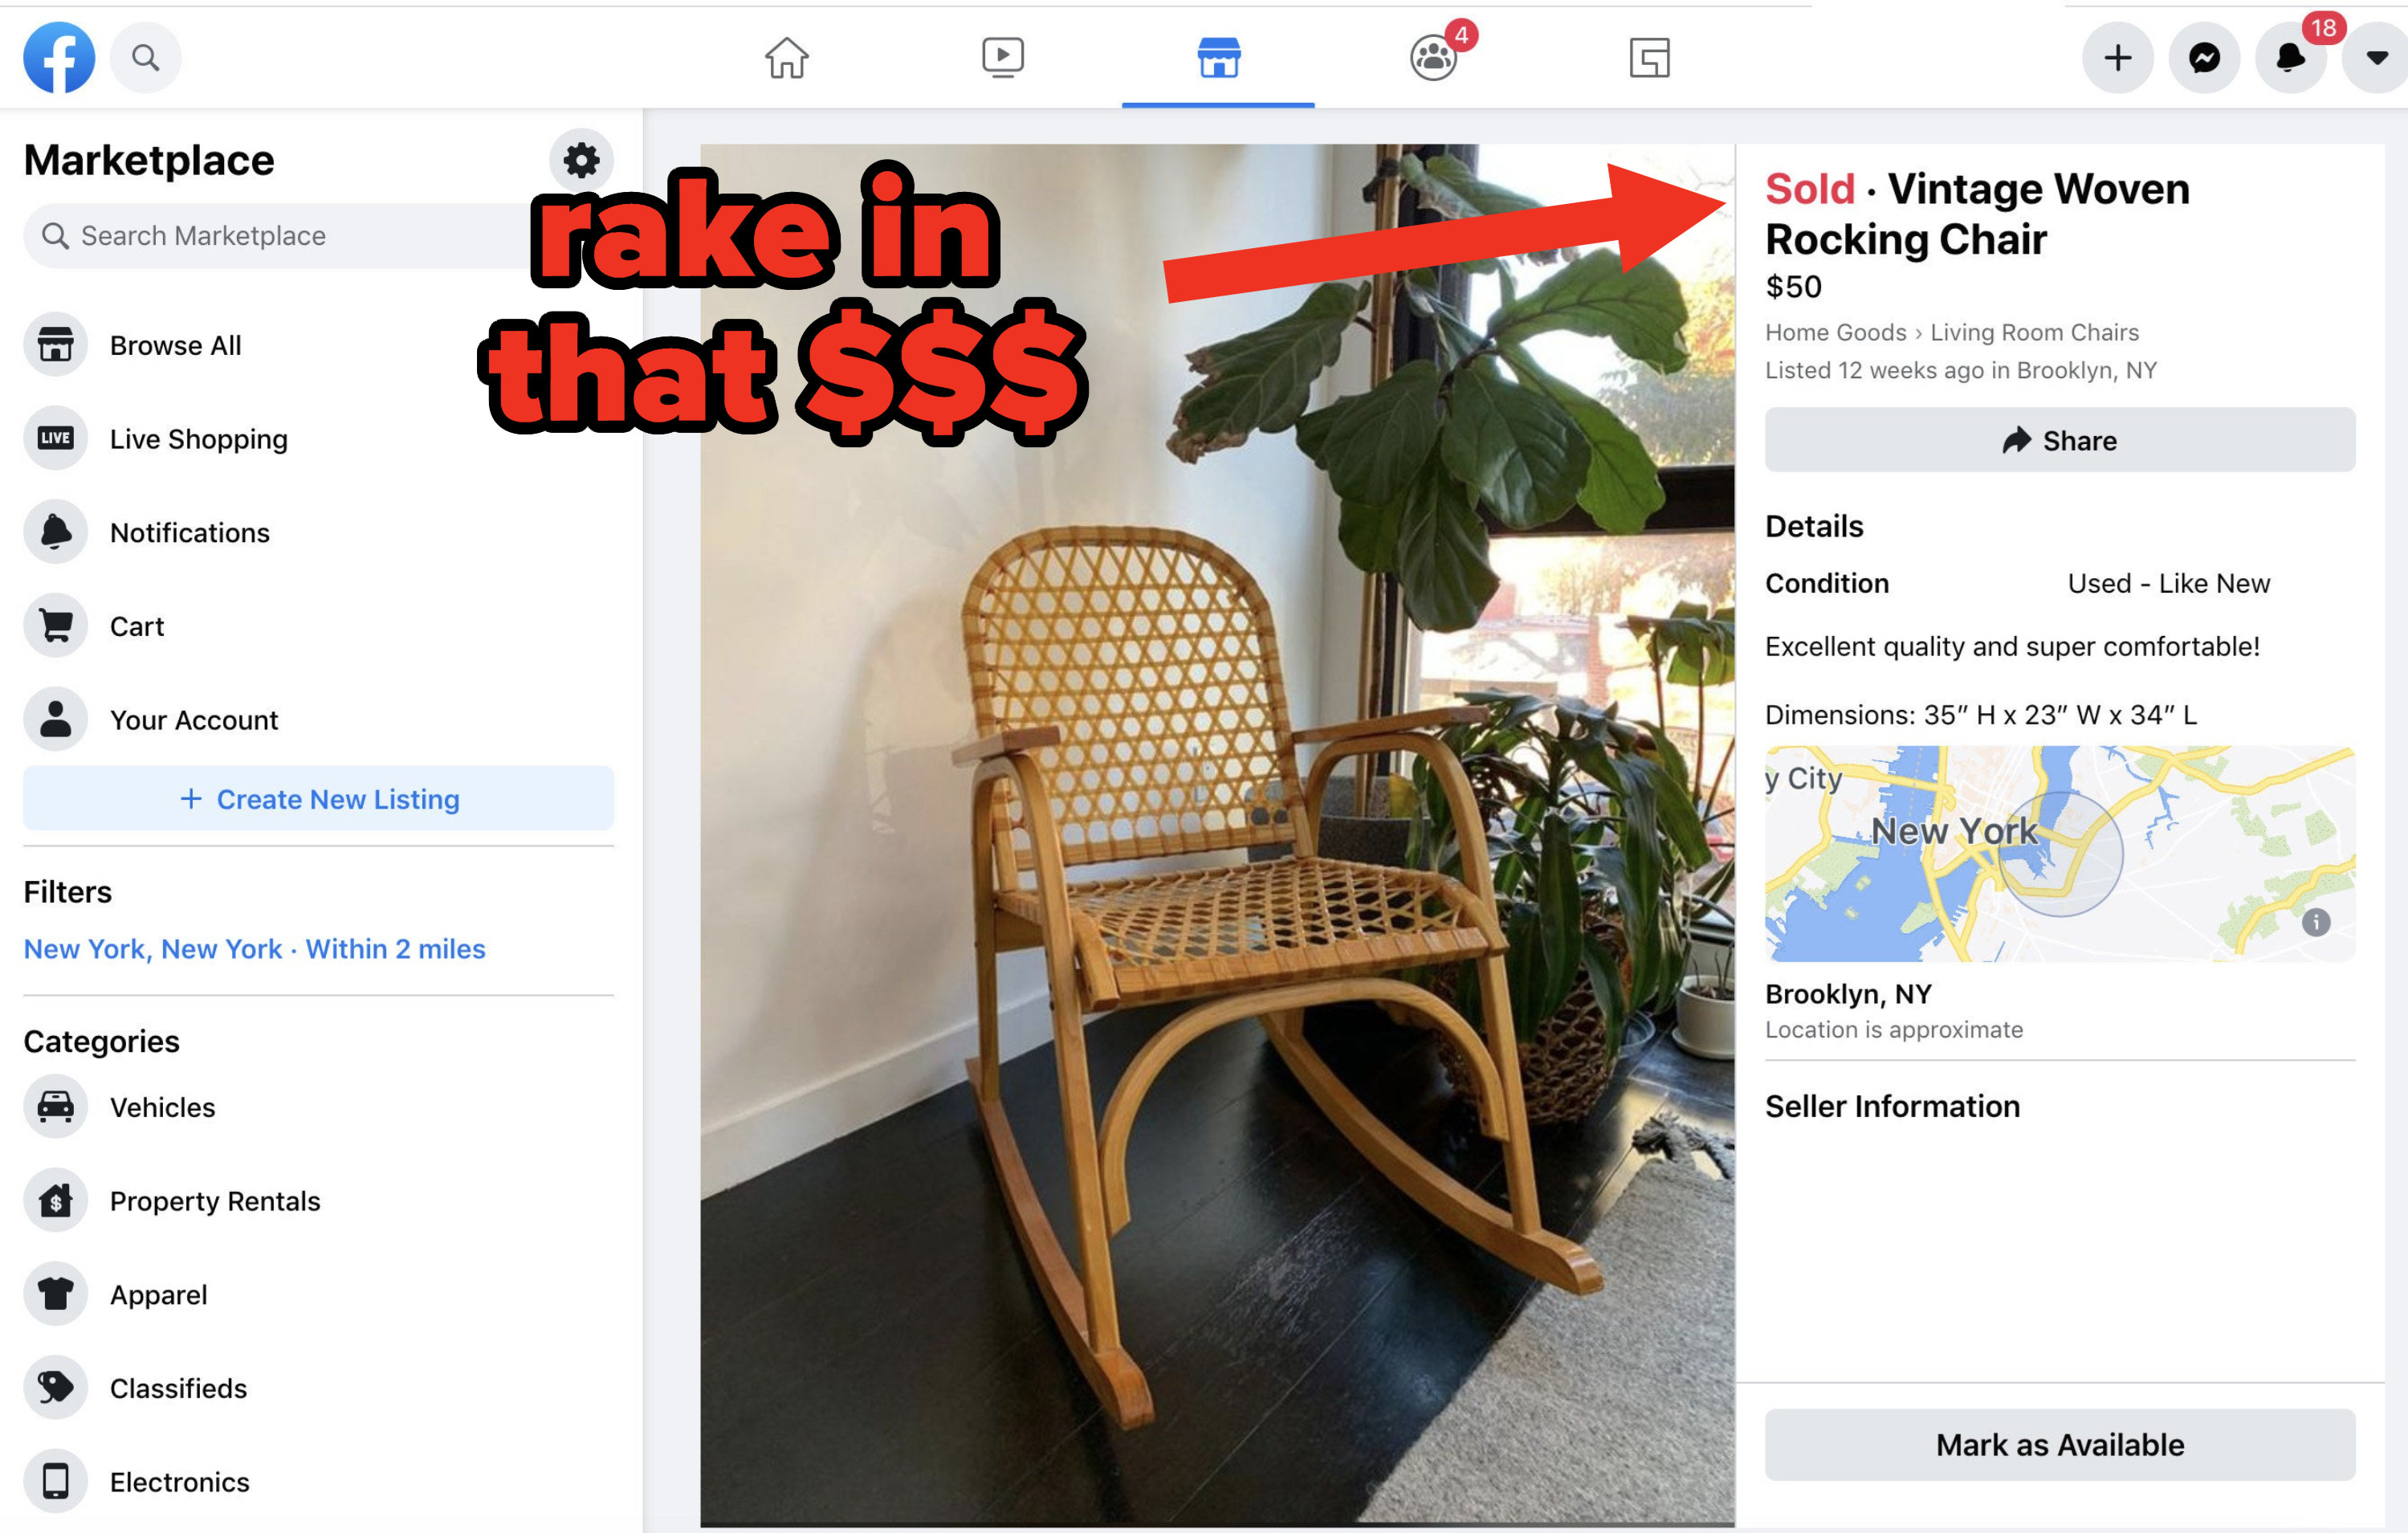 a rocking chair sold for $50 on facebook market place